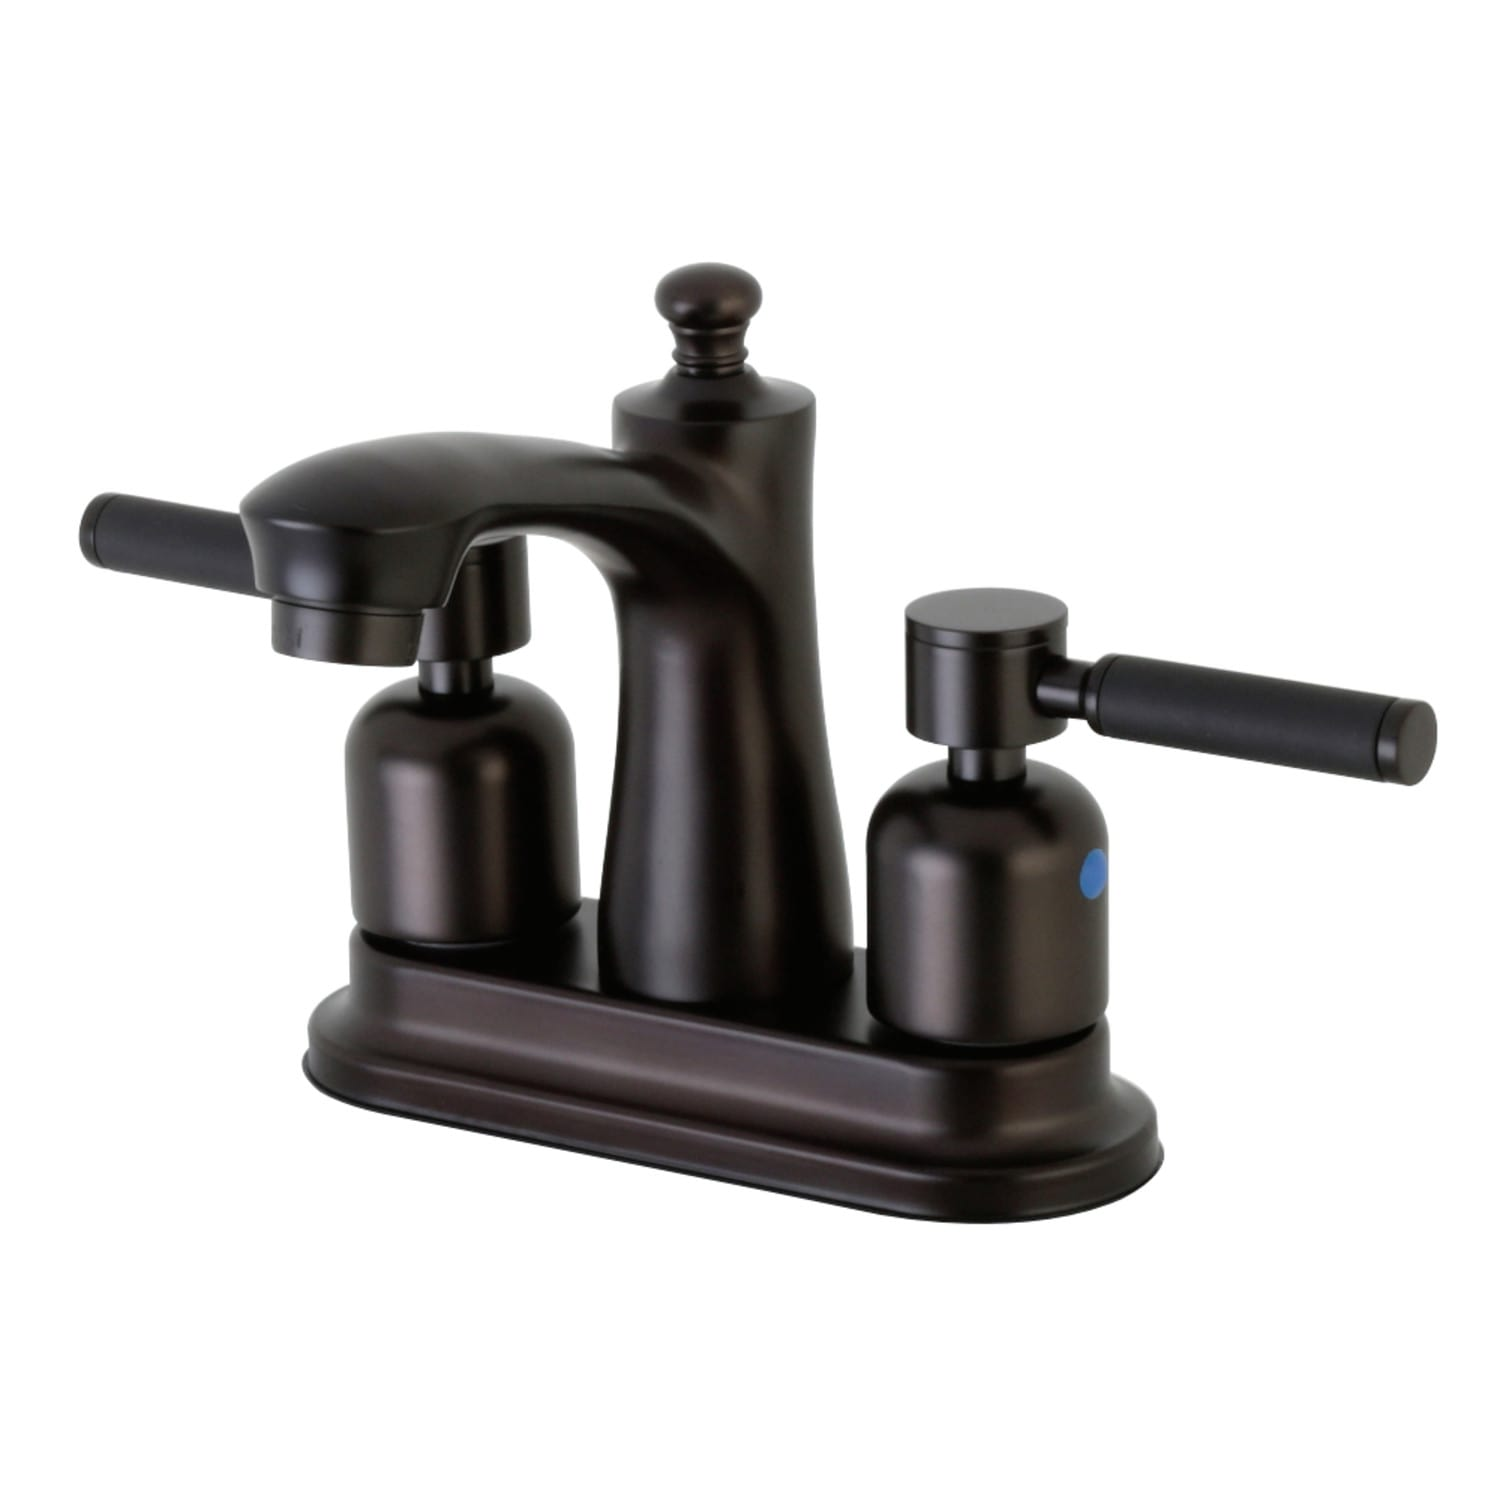 Kingston Brass Fb7625dkl Oil Rubbed Bronze Kaiser 1 2 Gpm Centerset Bathroom Faucet With Rubber Coated Lever Handles Includes Pop Up Drain Assembly Faucet Com